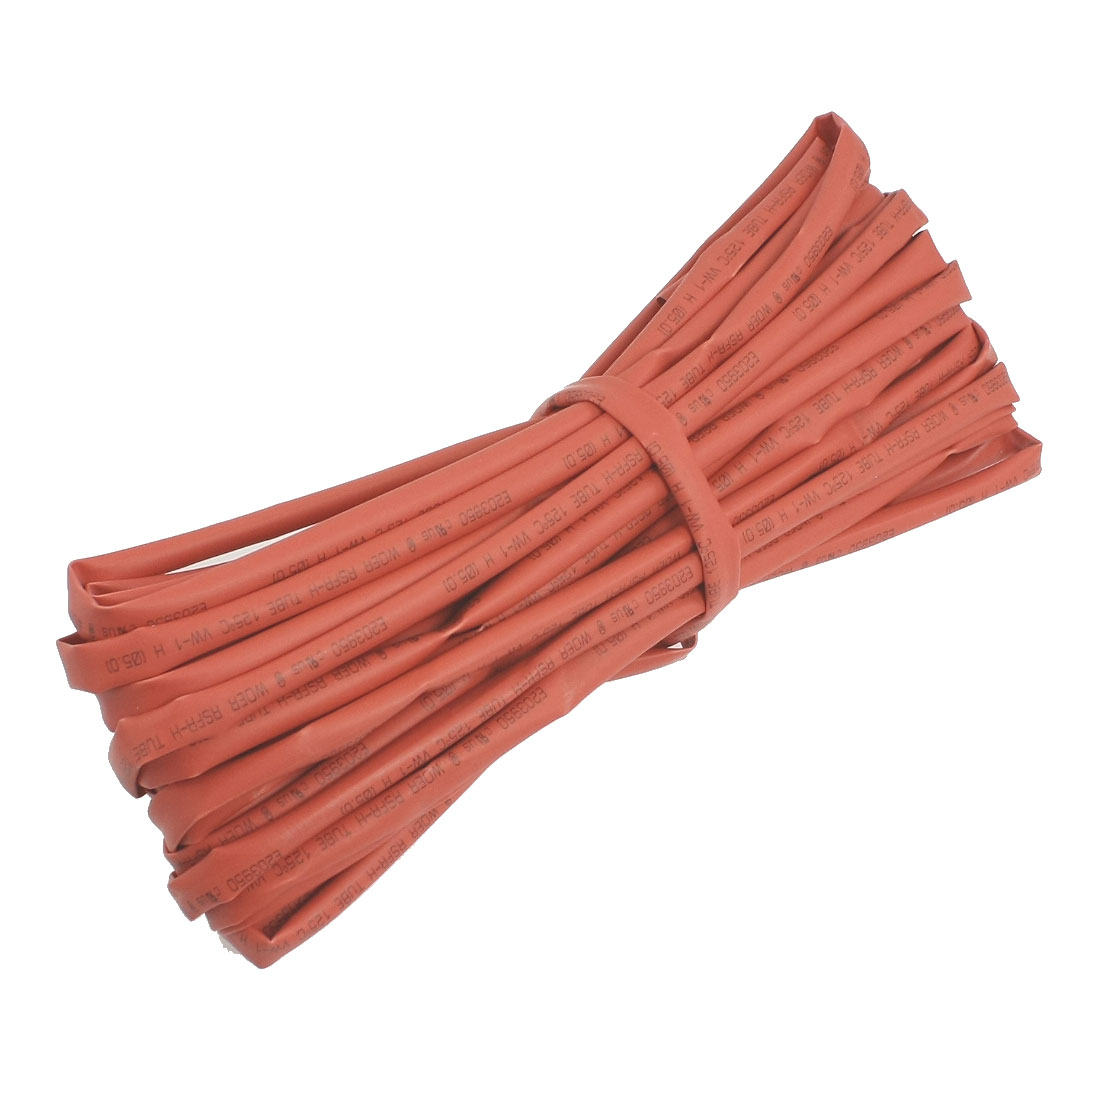 10M-32-8ft-5mm-Dia-Red-Shrinkable-Tube-Heat-Shrink-Stubing